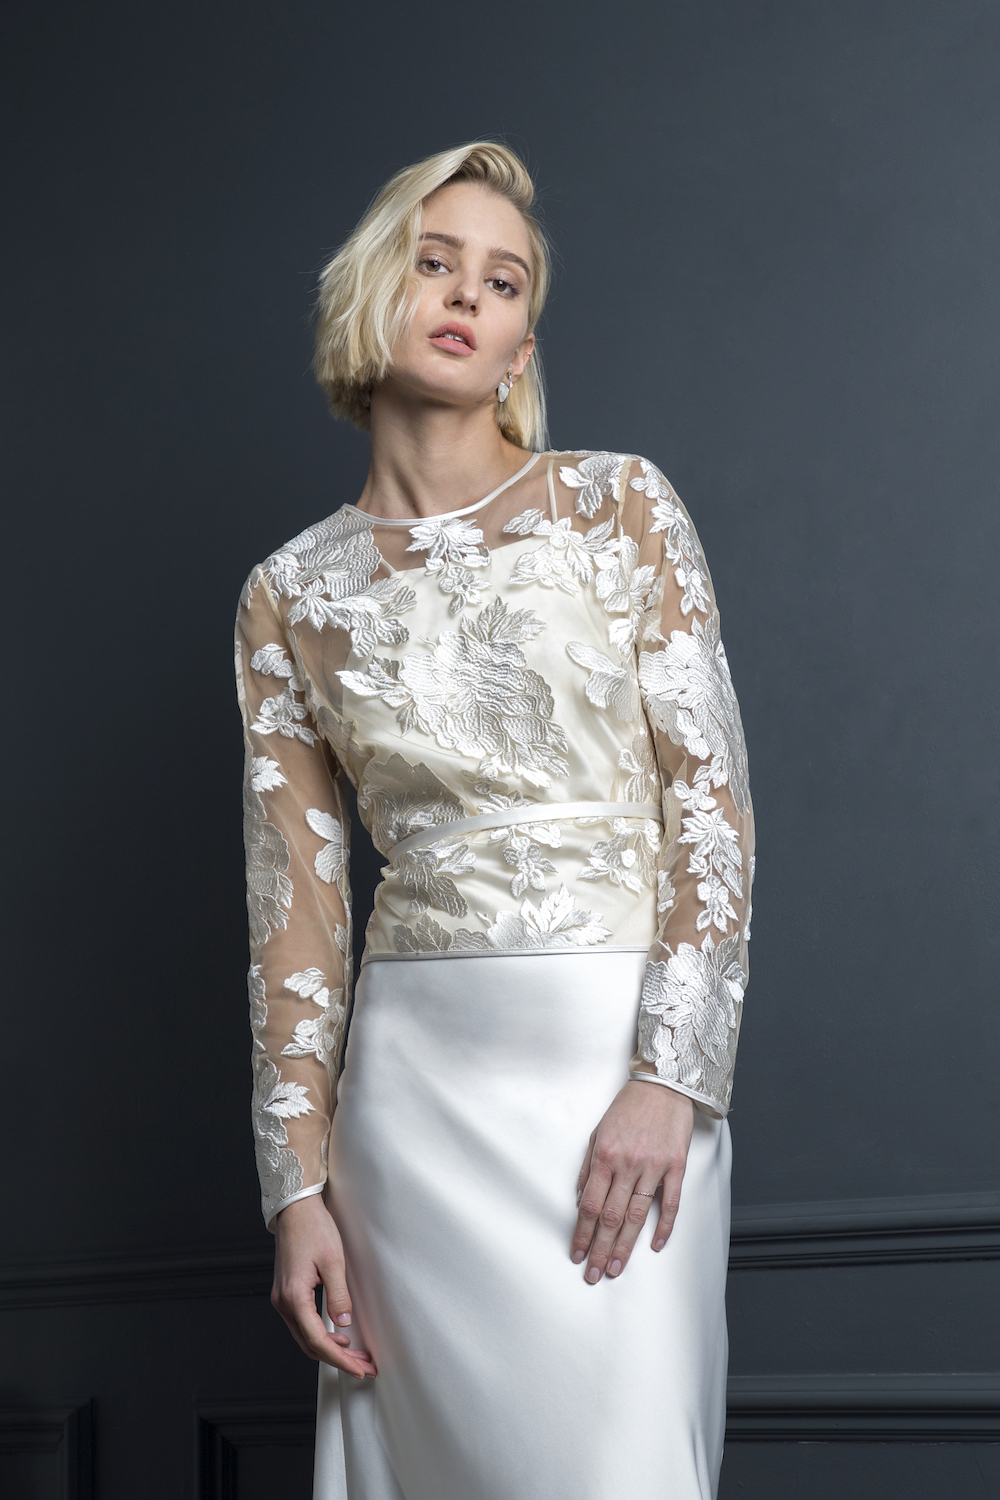 BASIL TOP ,  MAX SLIP & NARROW BELT | WEDDING DRESS BY HALFPENNY LONDON